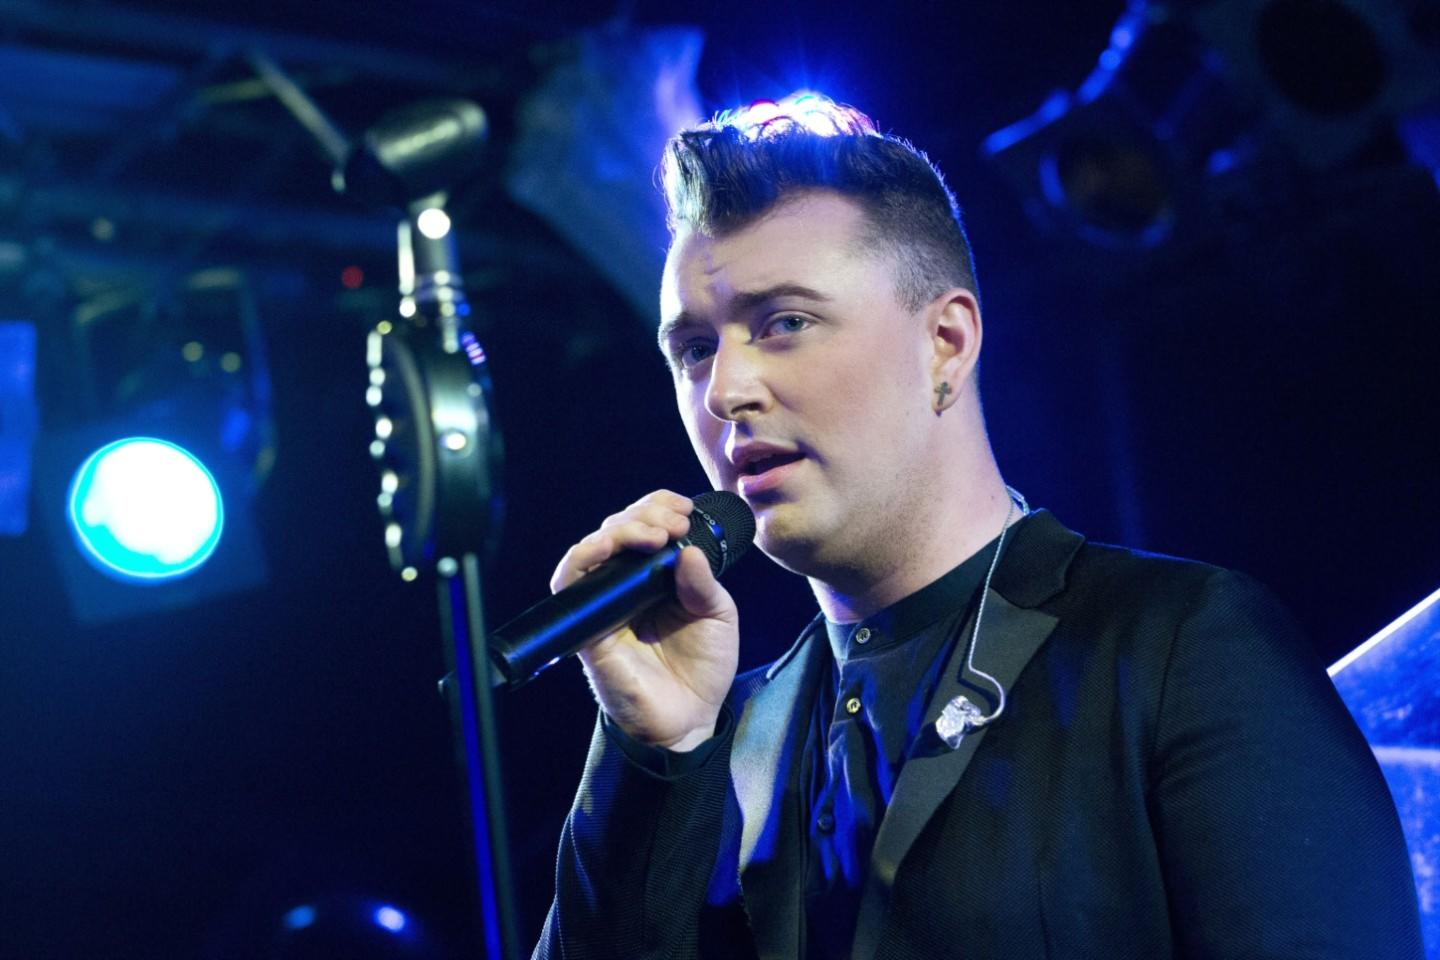 Sam Smith Tour 2020.Sam Smith Tickets Sam Smith Tour Dates And Concert Tickets